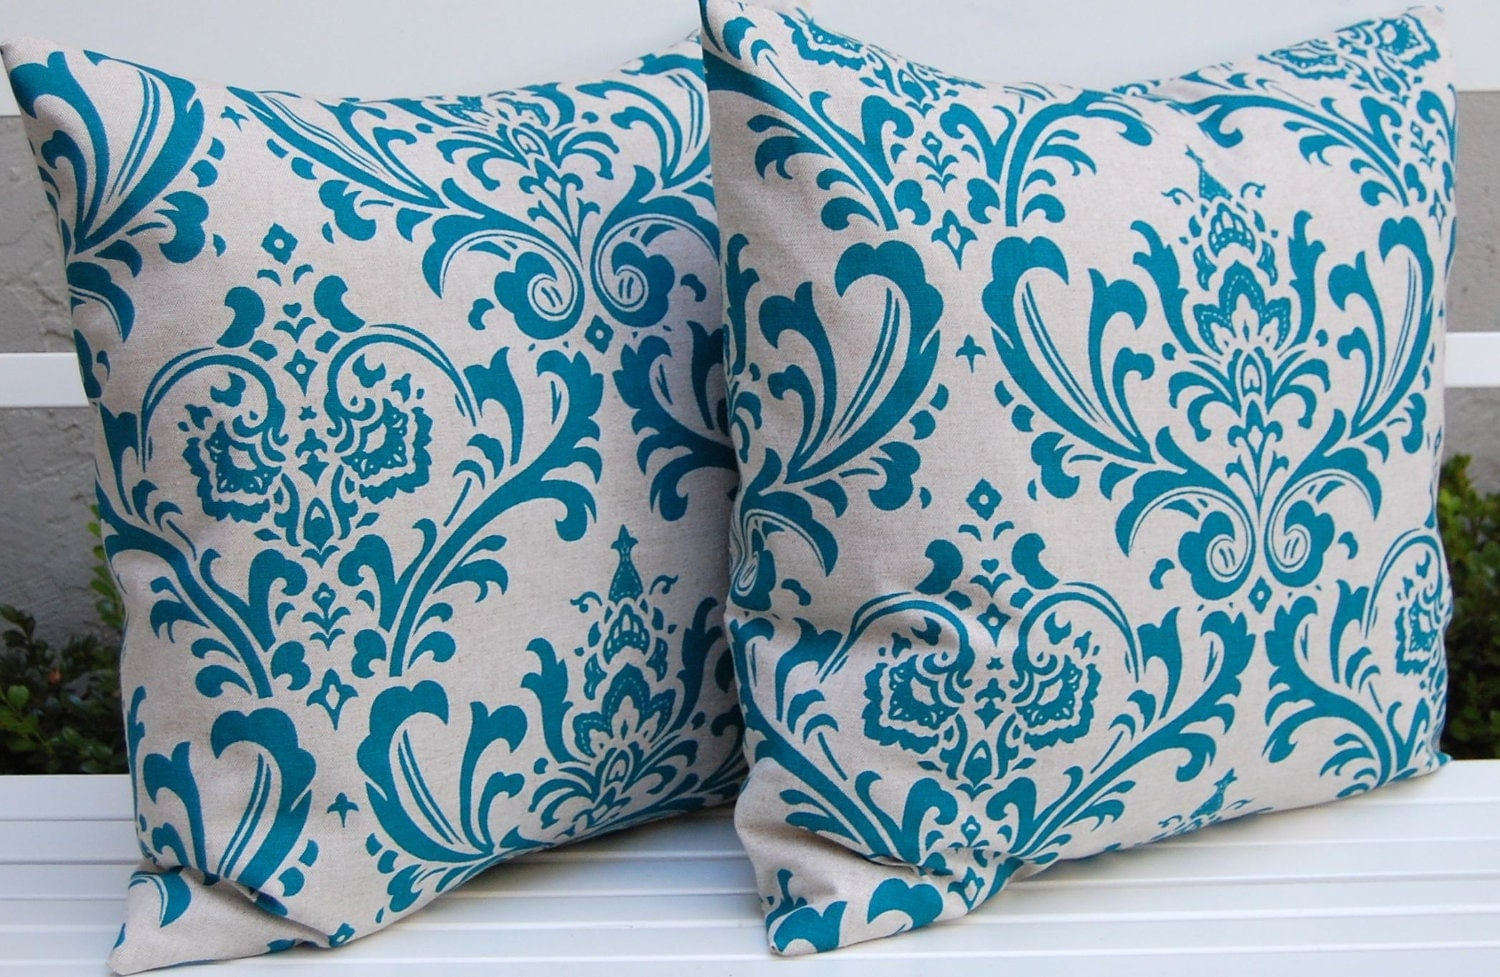 Last Pair Decorative Pillows Teal Damask Throw Pillow Covers